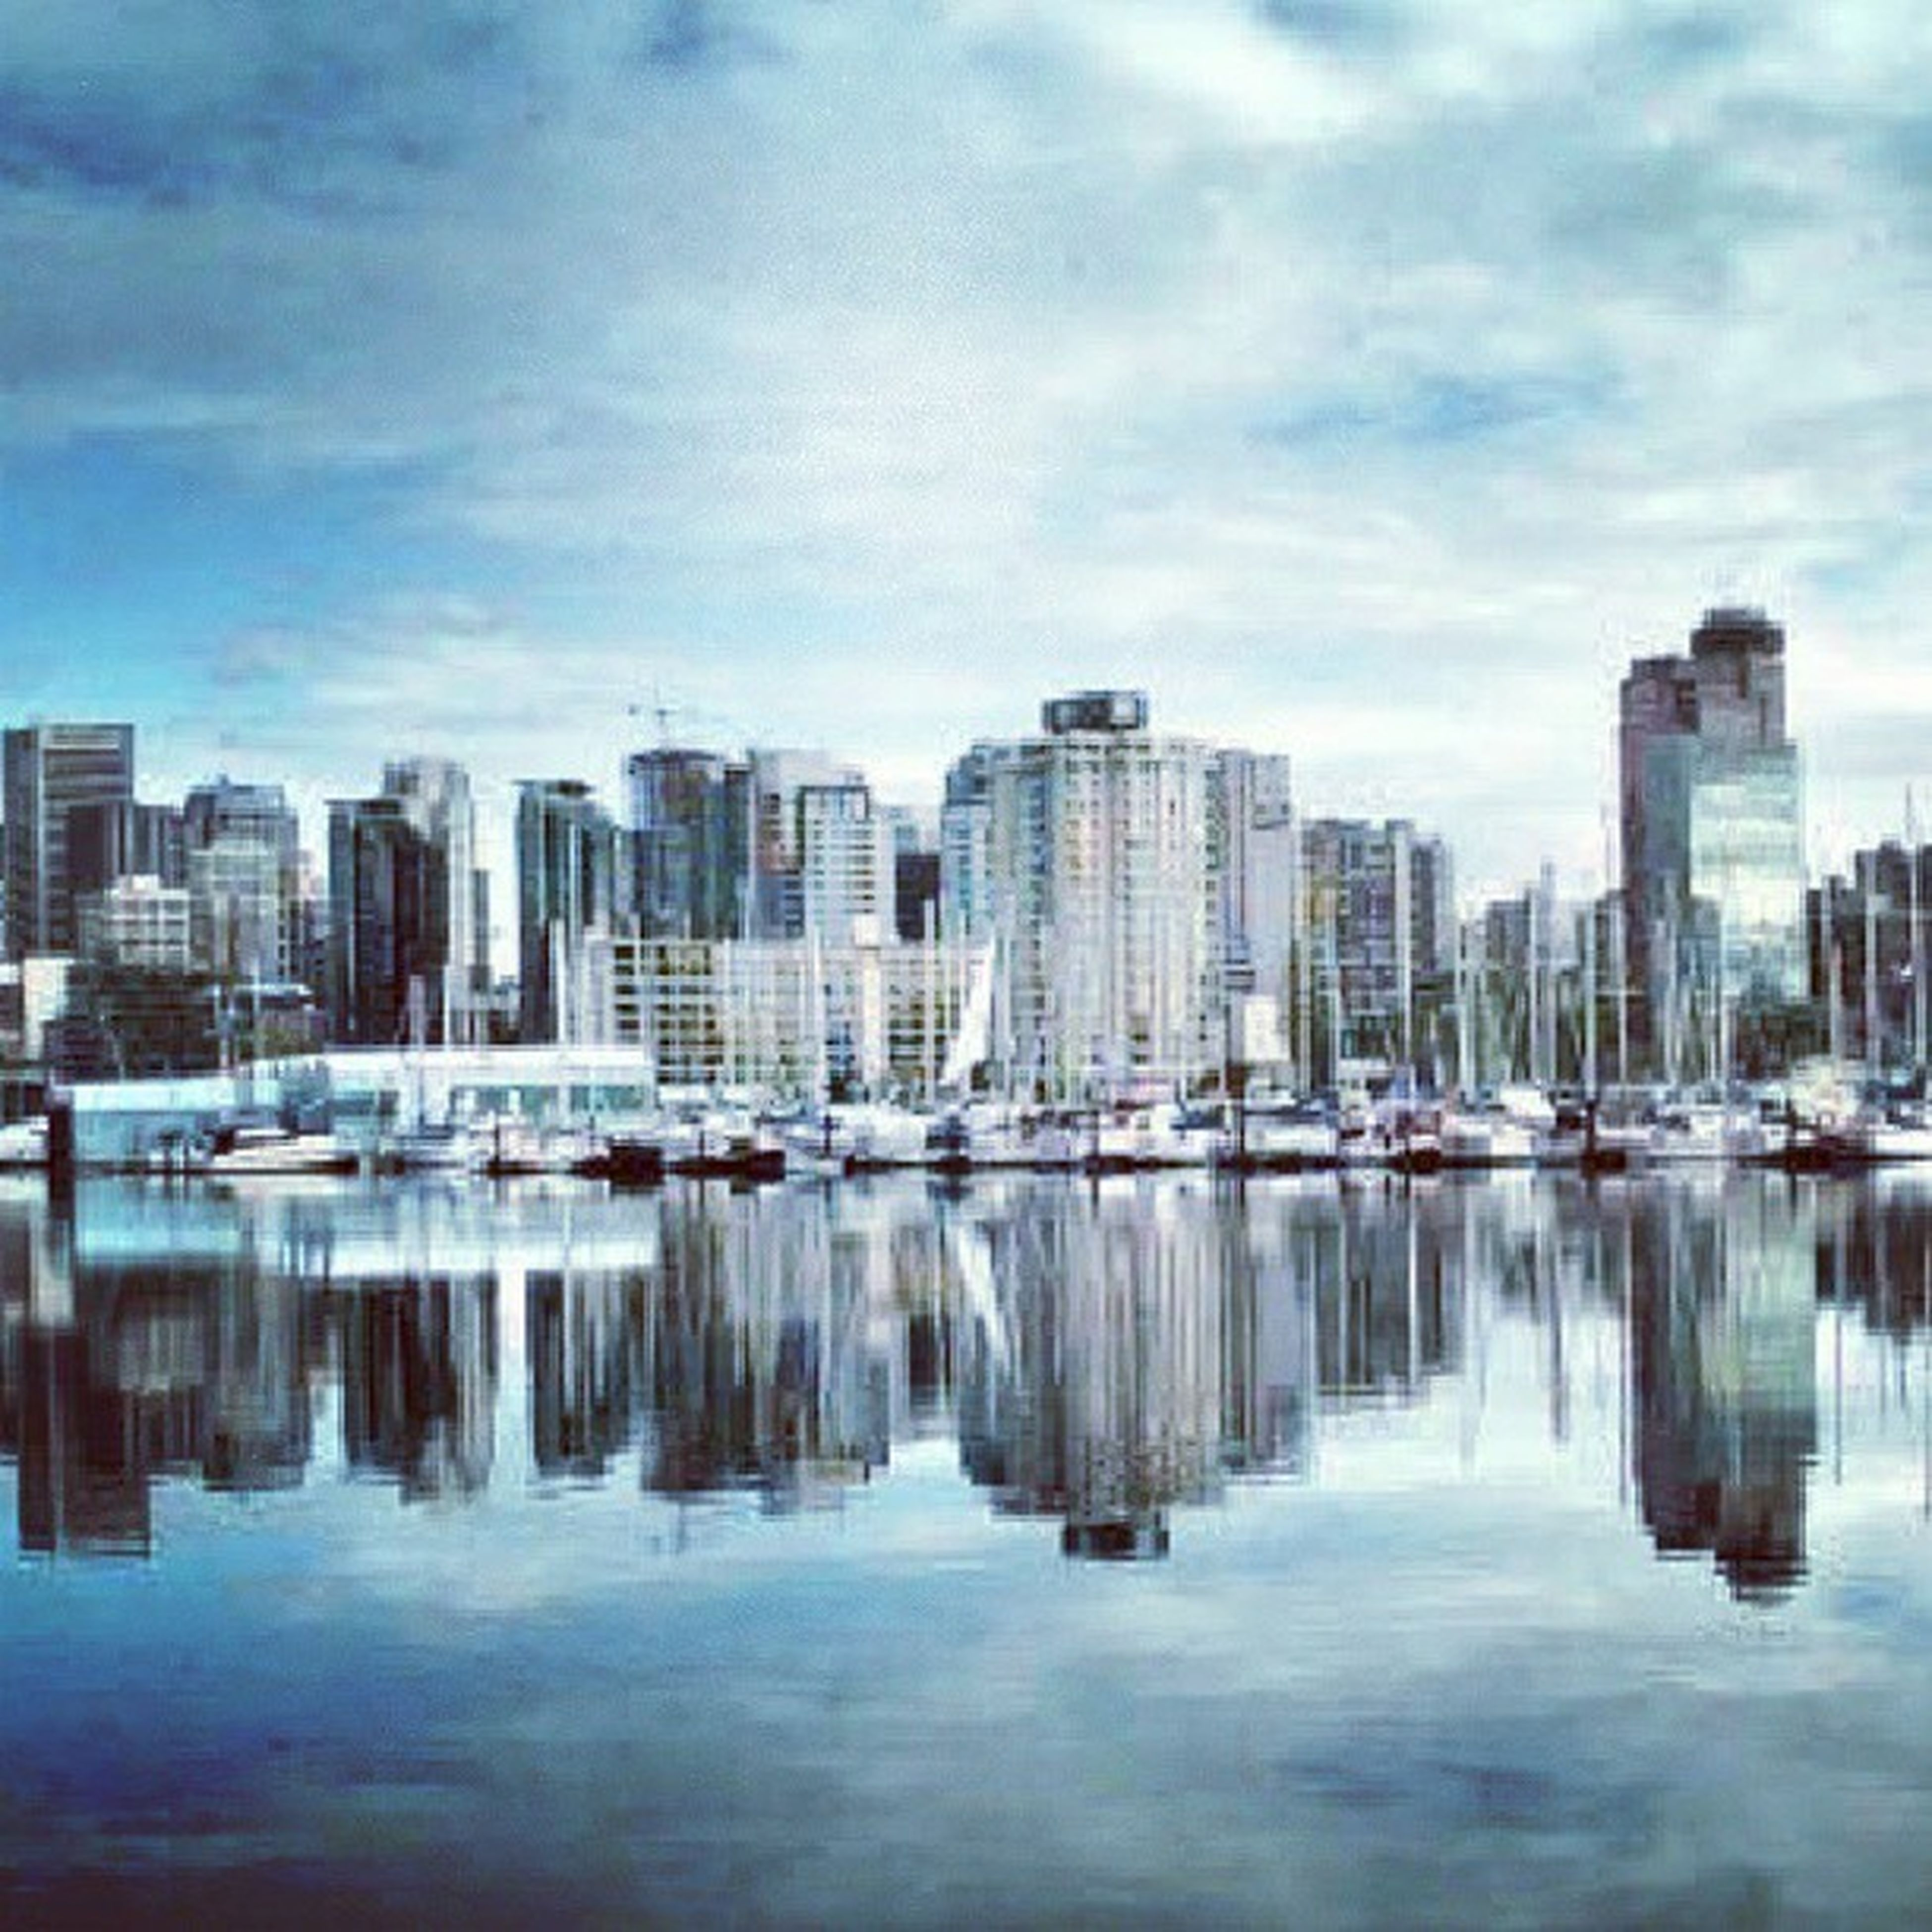 building exterior, architecture, water, city, built structure, waterfront, skyscraper, reflection, sky, cityscape, river, modern, office building, urban skyline, cloud - sky, tall - high, tower, lake, cloud, financial district